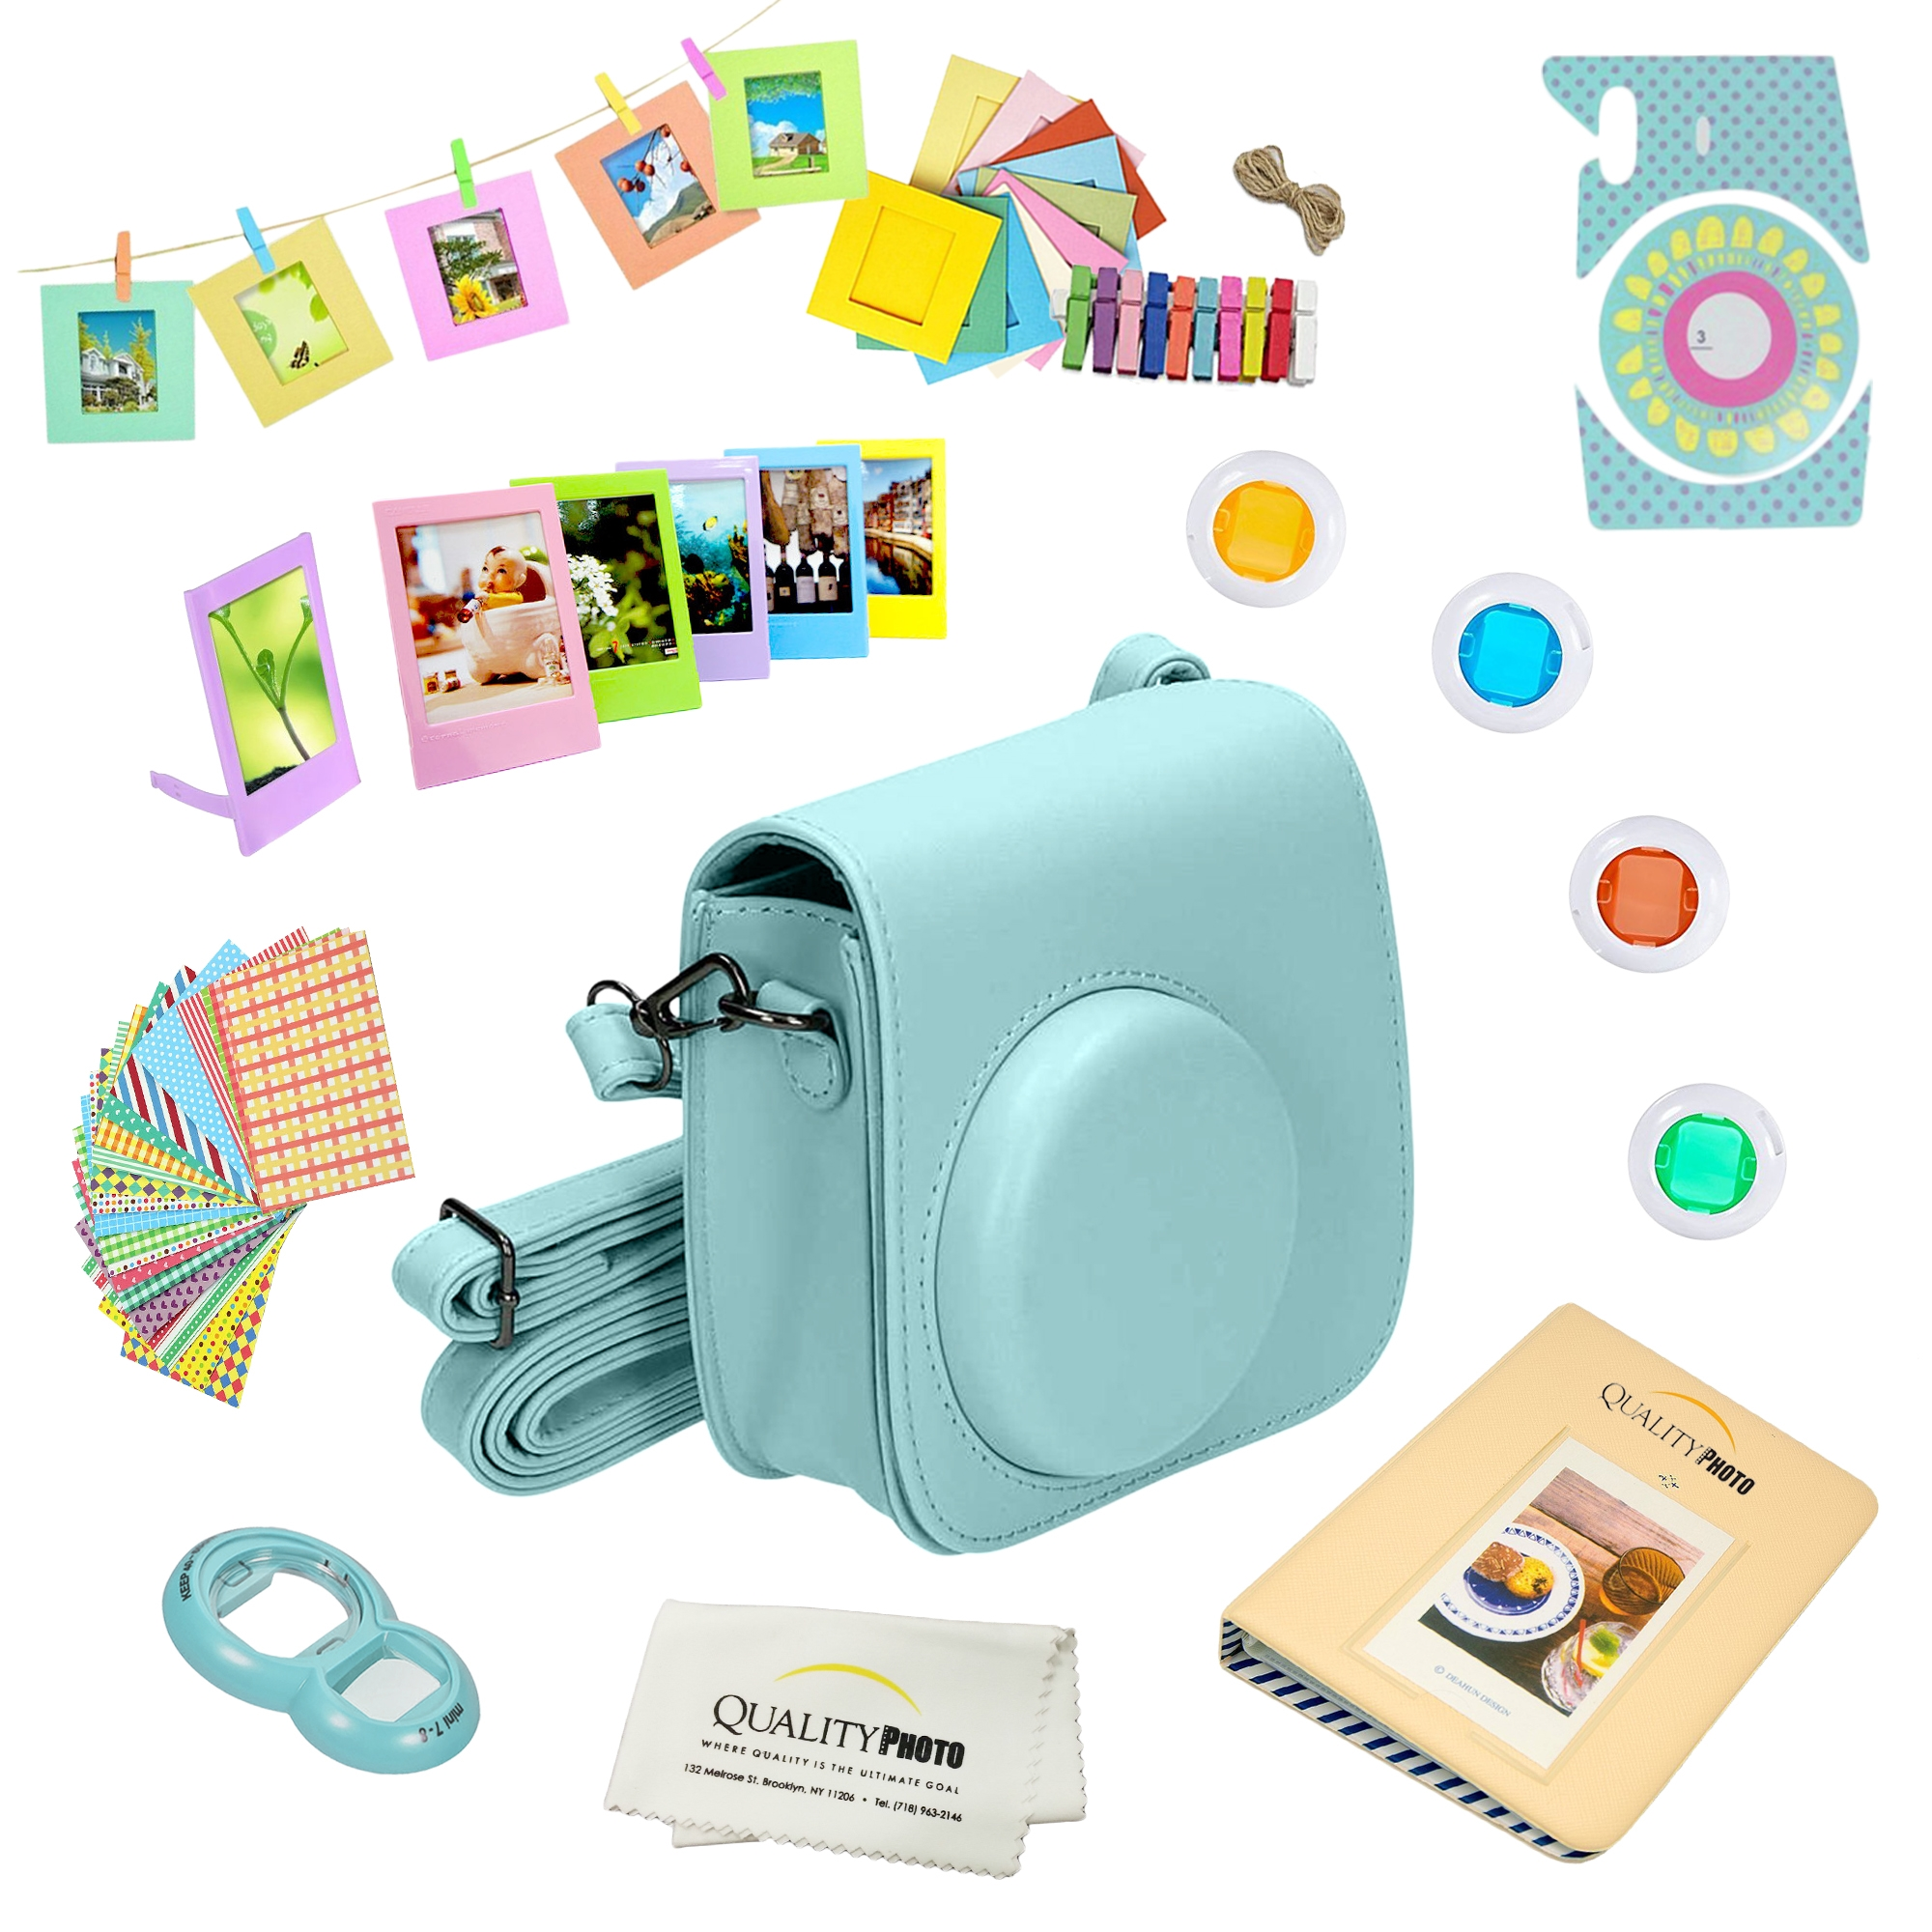 Fujifilm Instax Mini 9 Accessories kit (Ice Blue ) Includes a 12-piece Bundle For the Fujifilm Instax Mini 9 Instant Camera (Latest model 2017 Release.)